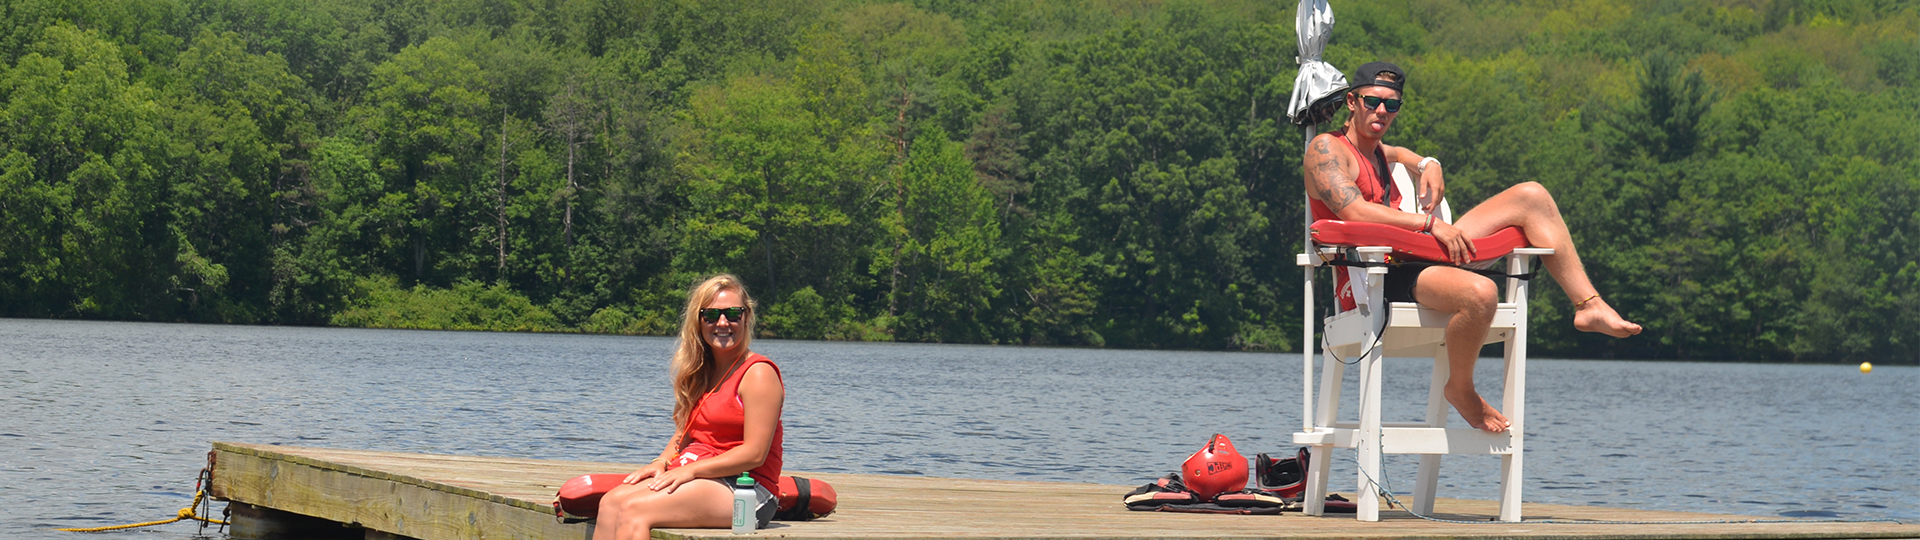 Summer on the beach or by the lake in America? Become a Lifeguard at Camp!